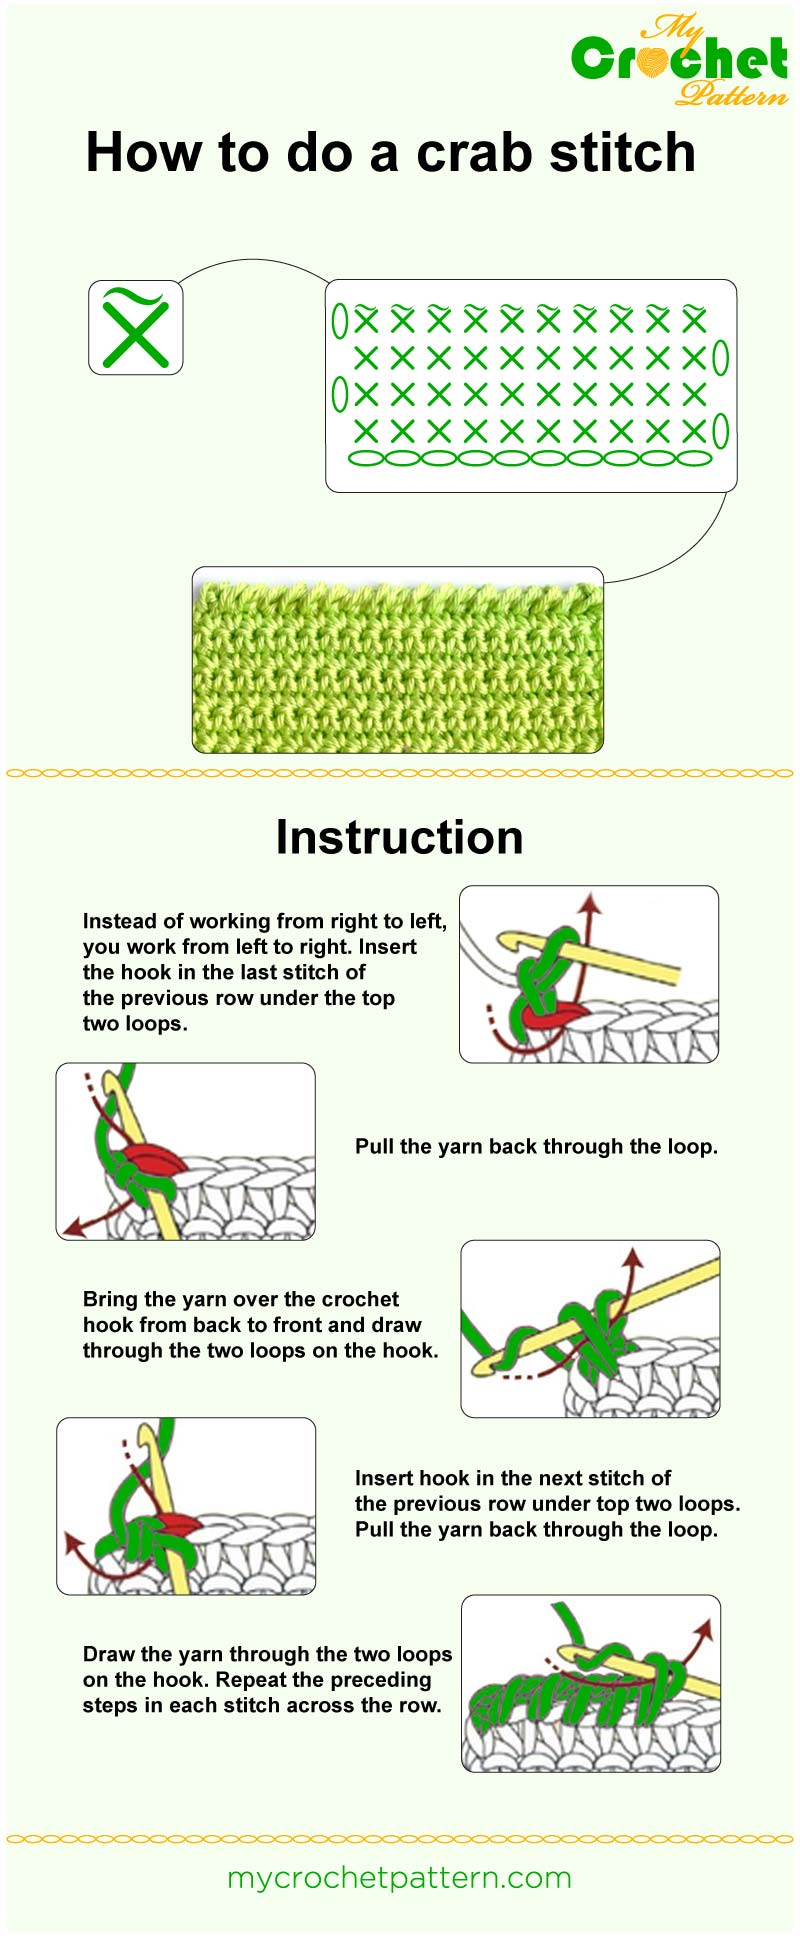 how to do a crab stitch - infographic